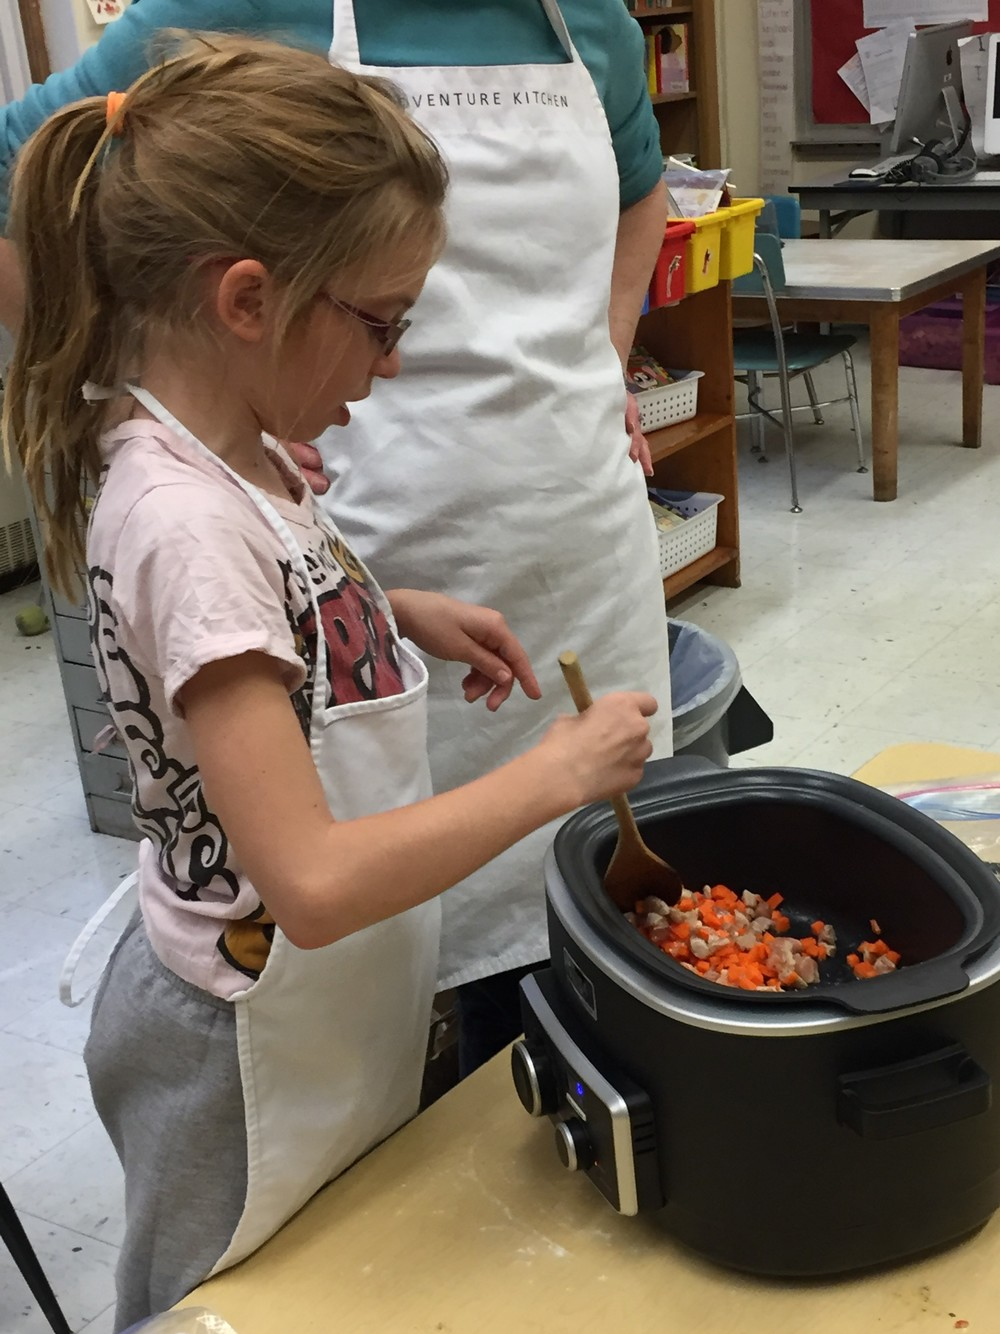 Stirring In the Carrots